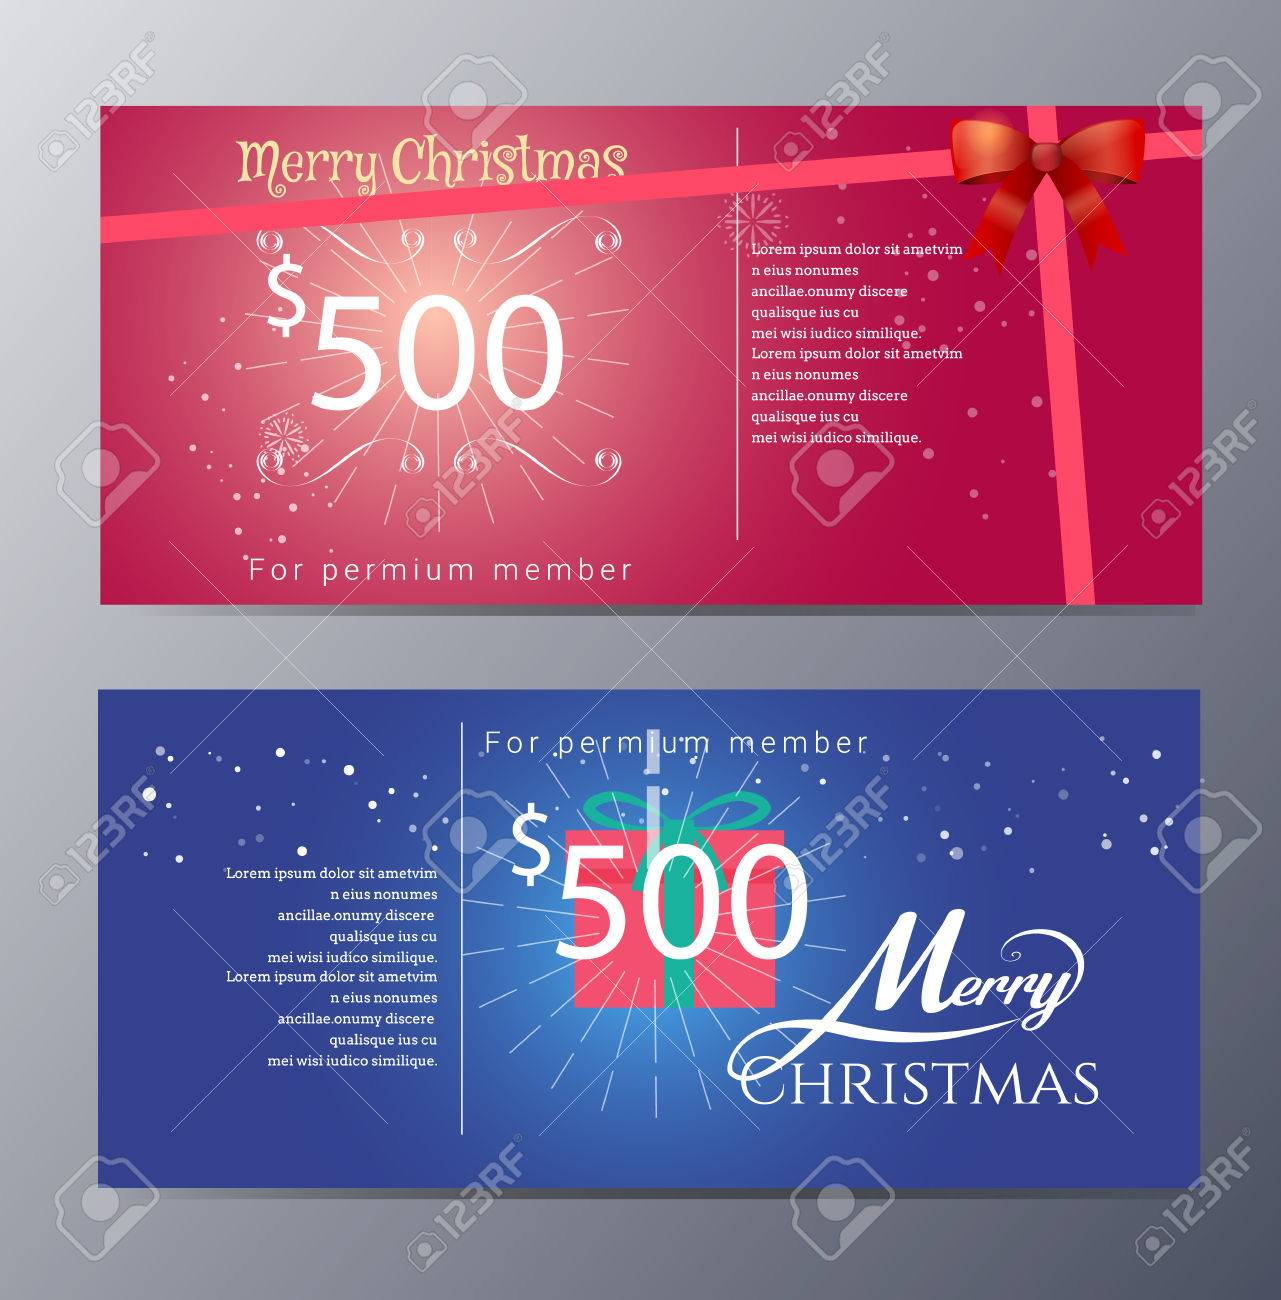 christmas gift voucher template colorful modern style royalty vector christmas gift voucher template colorful modern style